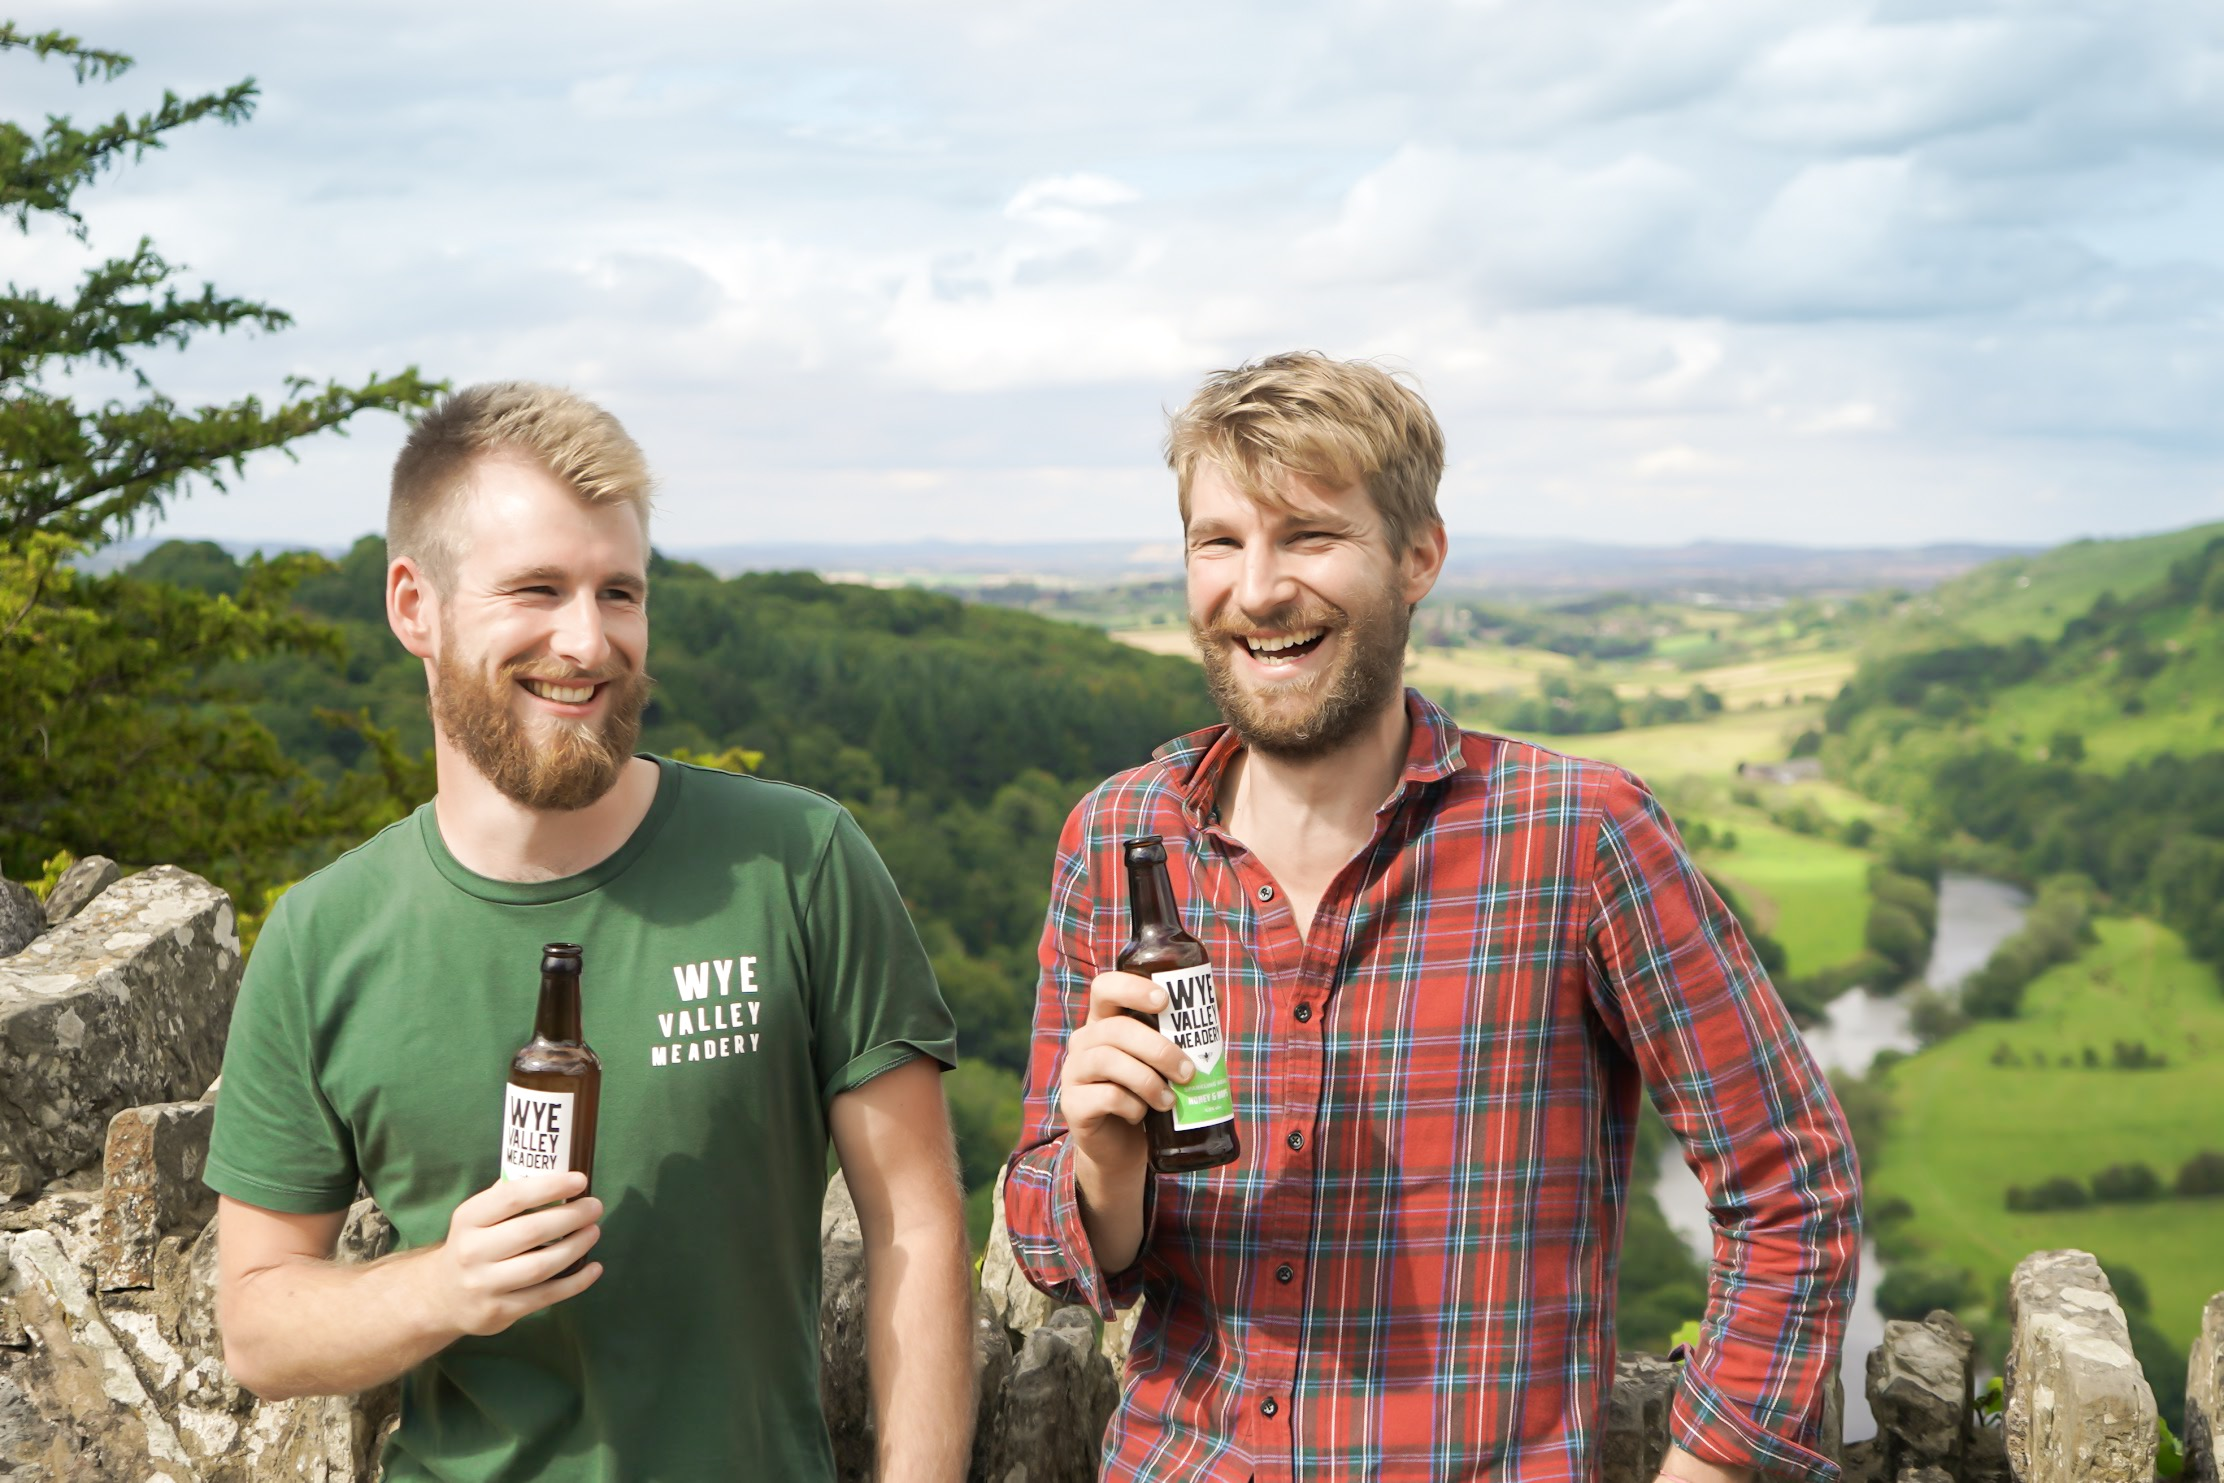 Kit (left) and Matt (right) Newell launched their meadery in Chepstow, South Wales